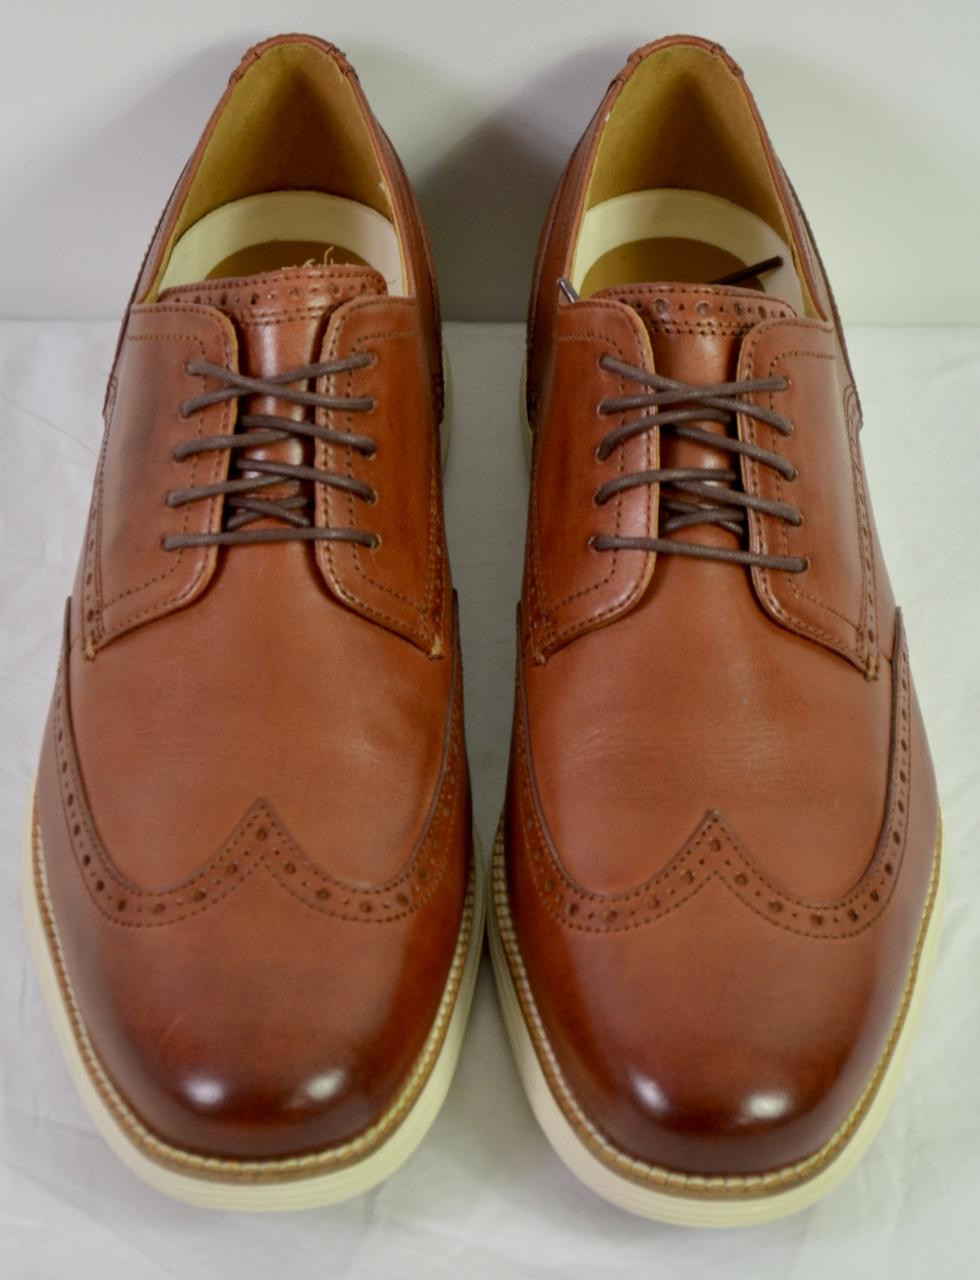 Cole Haan's Original Grand Shortwing